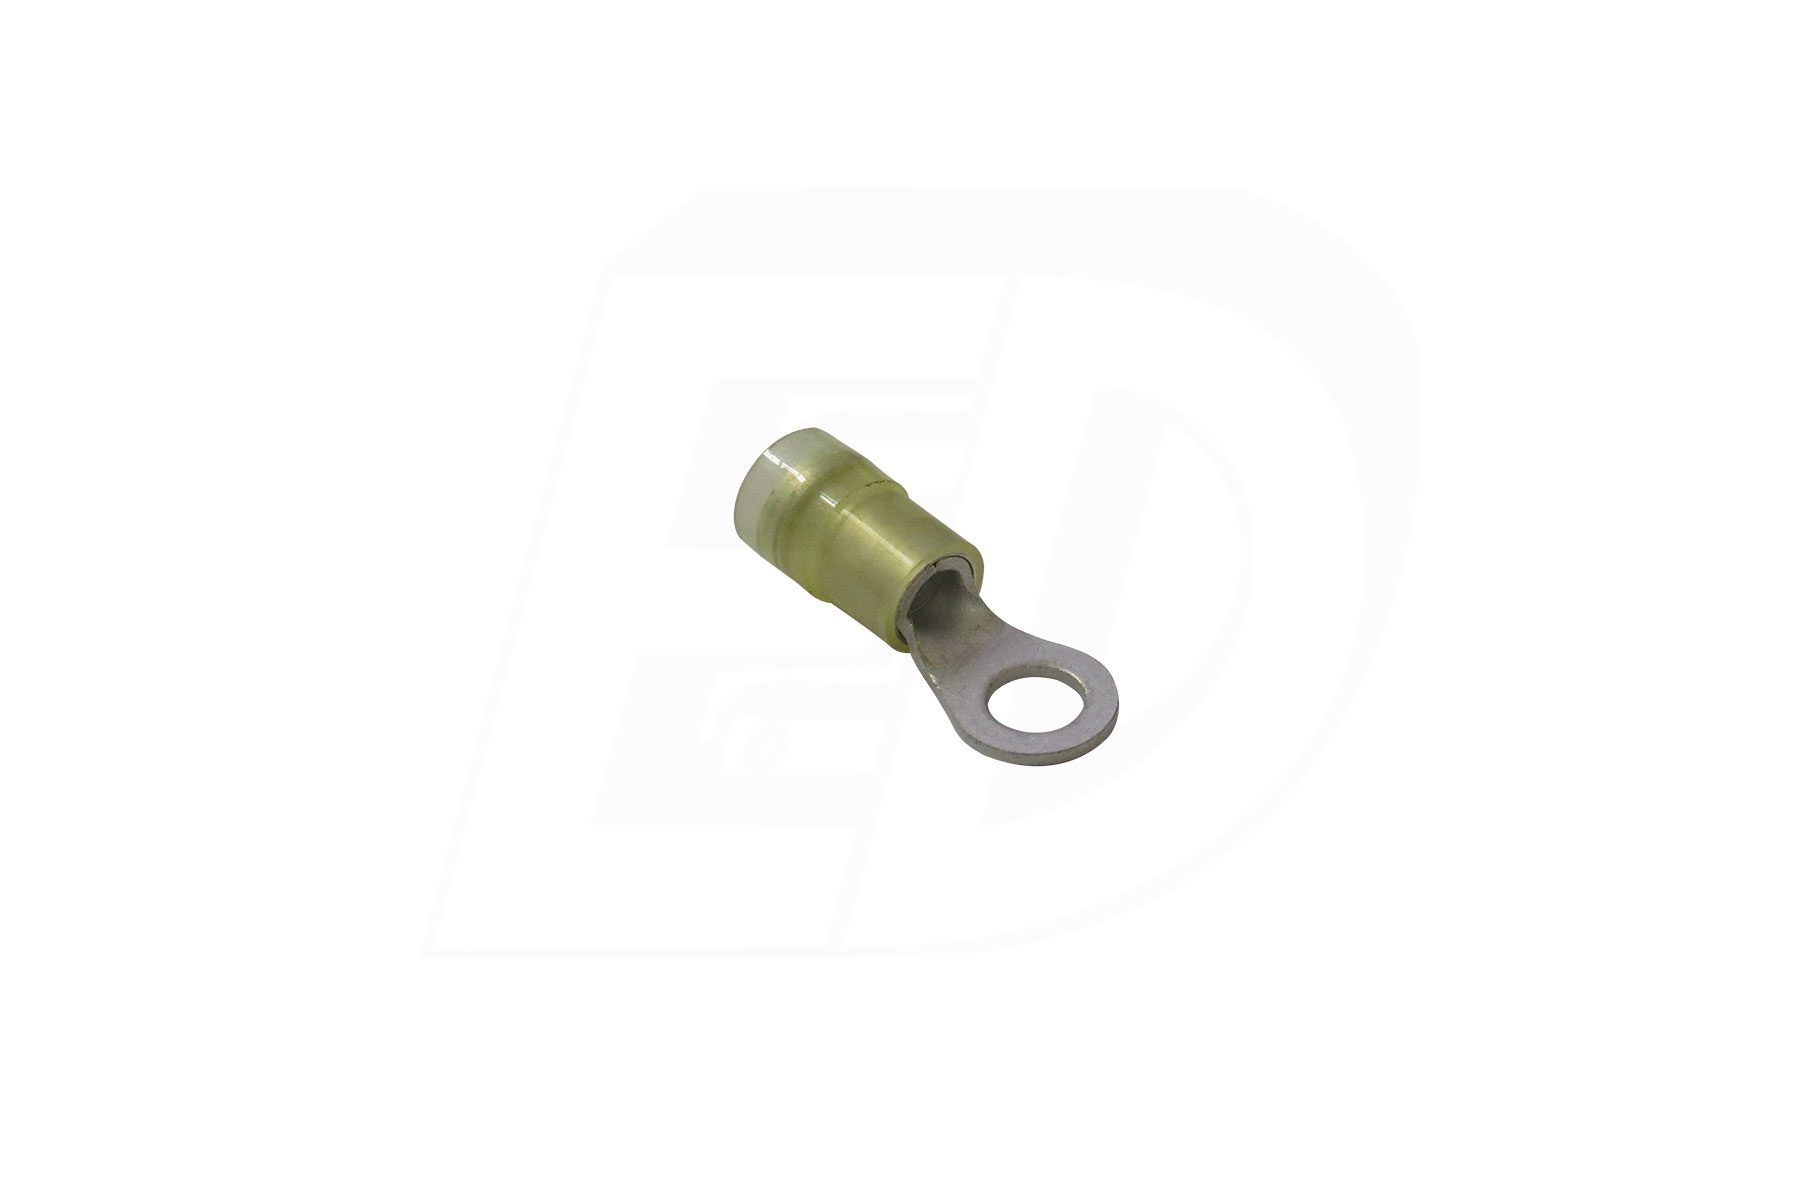 Nylon Insulated Ring Terminal 12 - 10 AWG